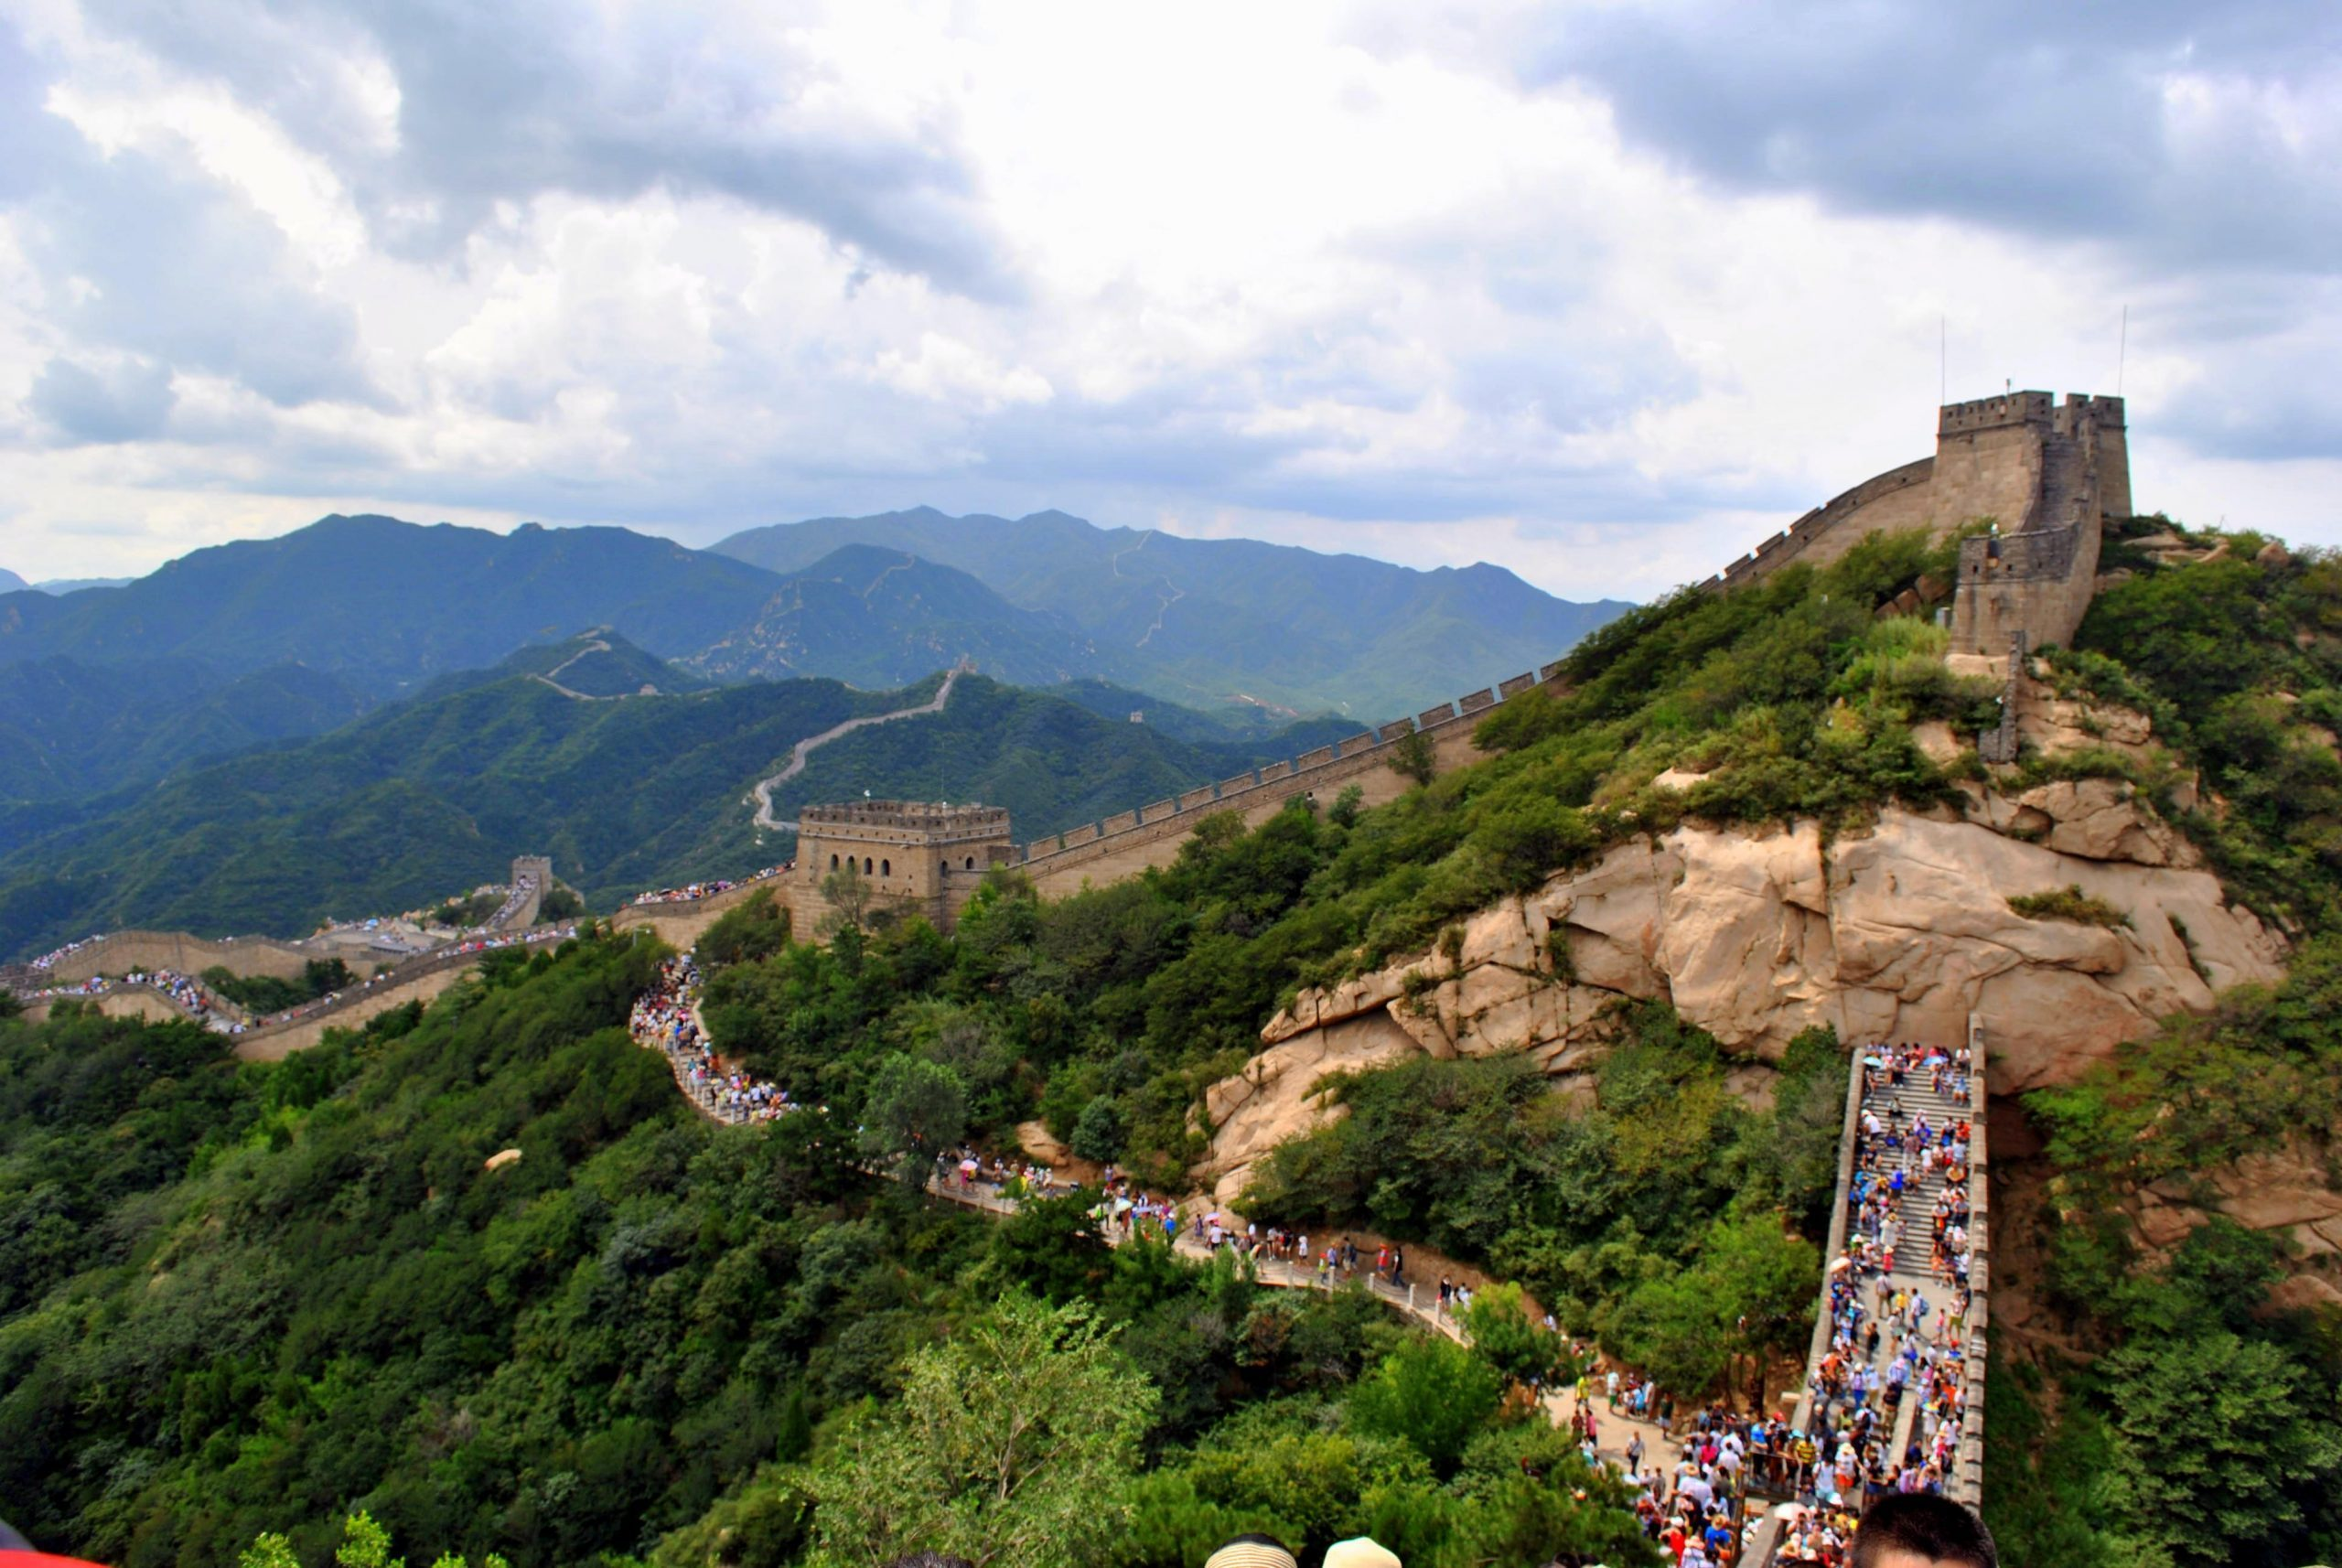 World trivia | 60 facts about the Great Wall of China